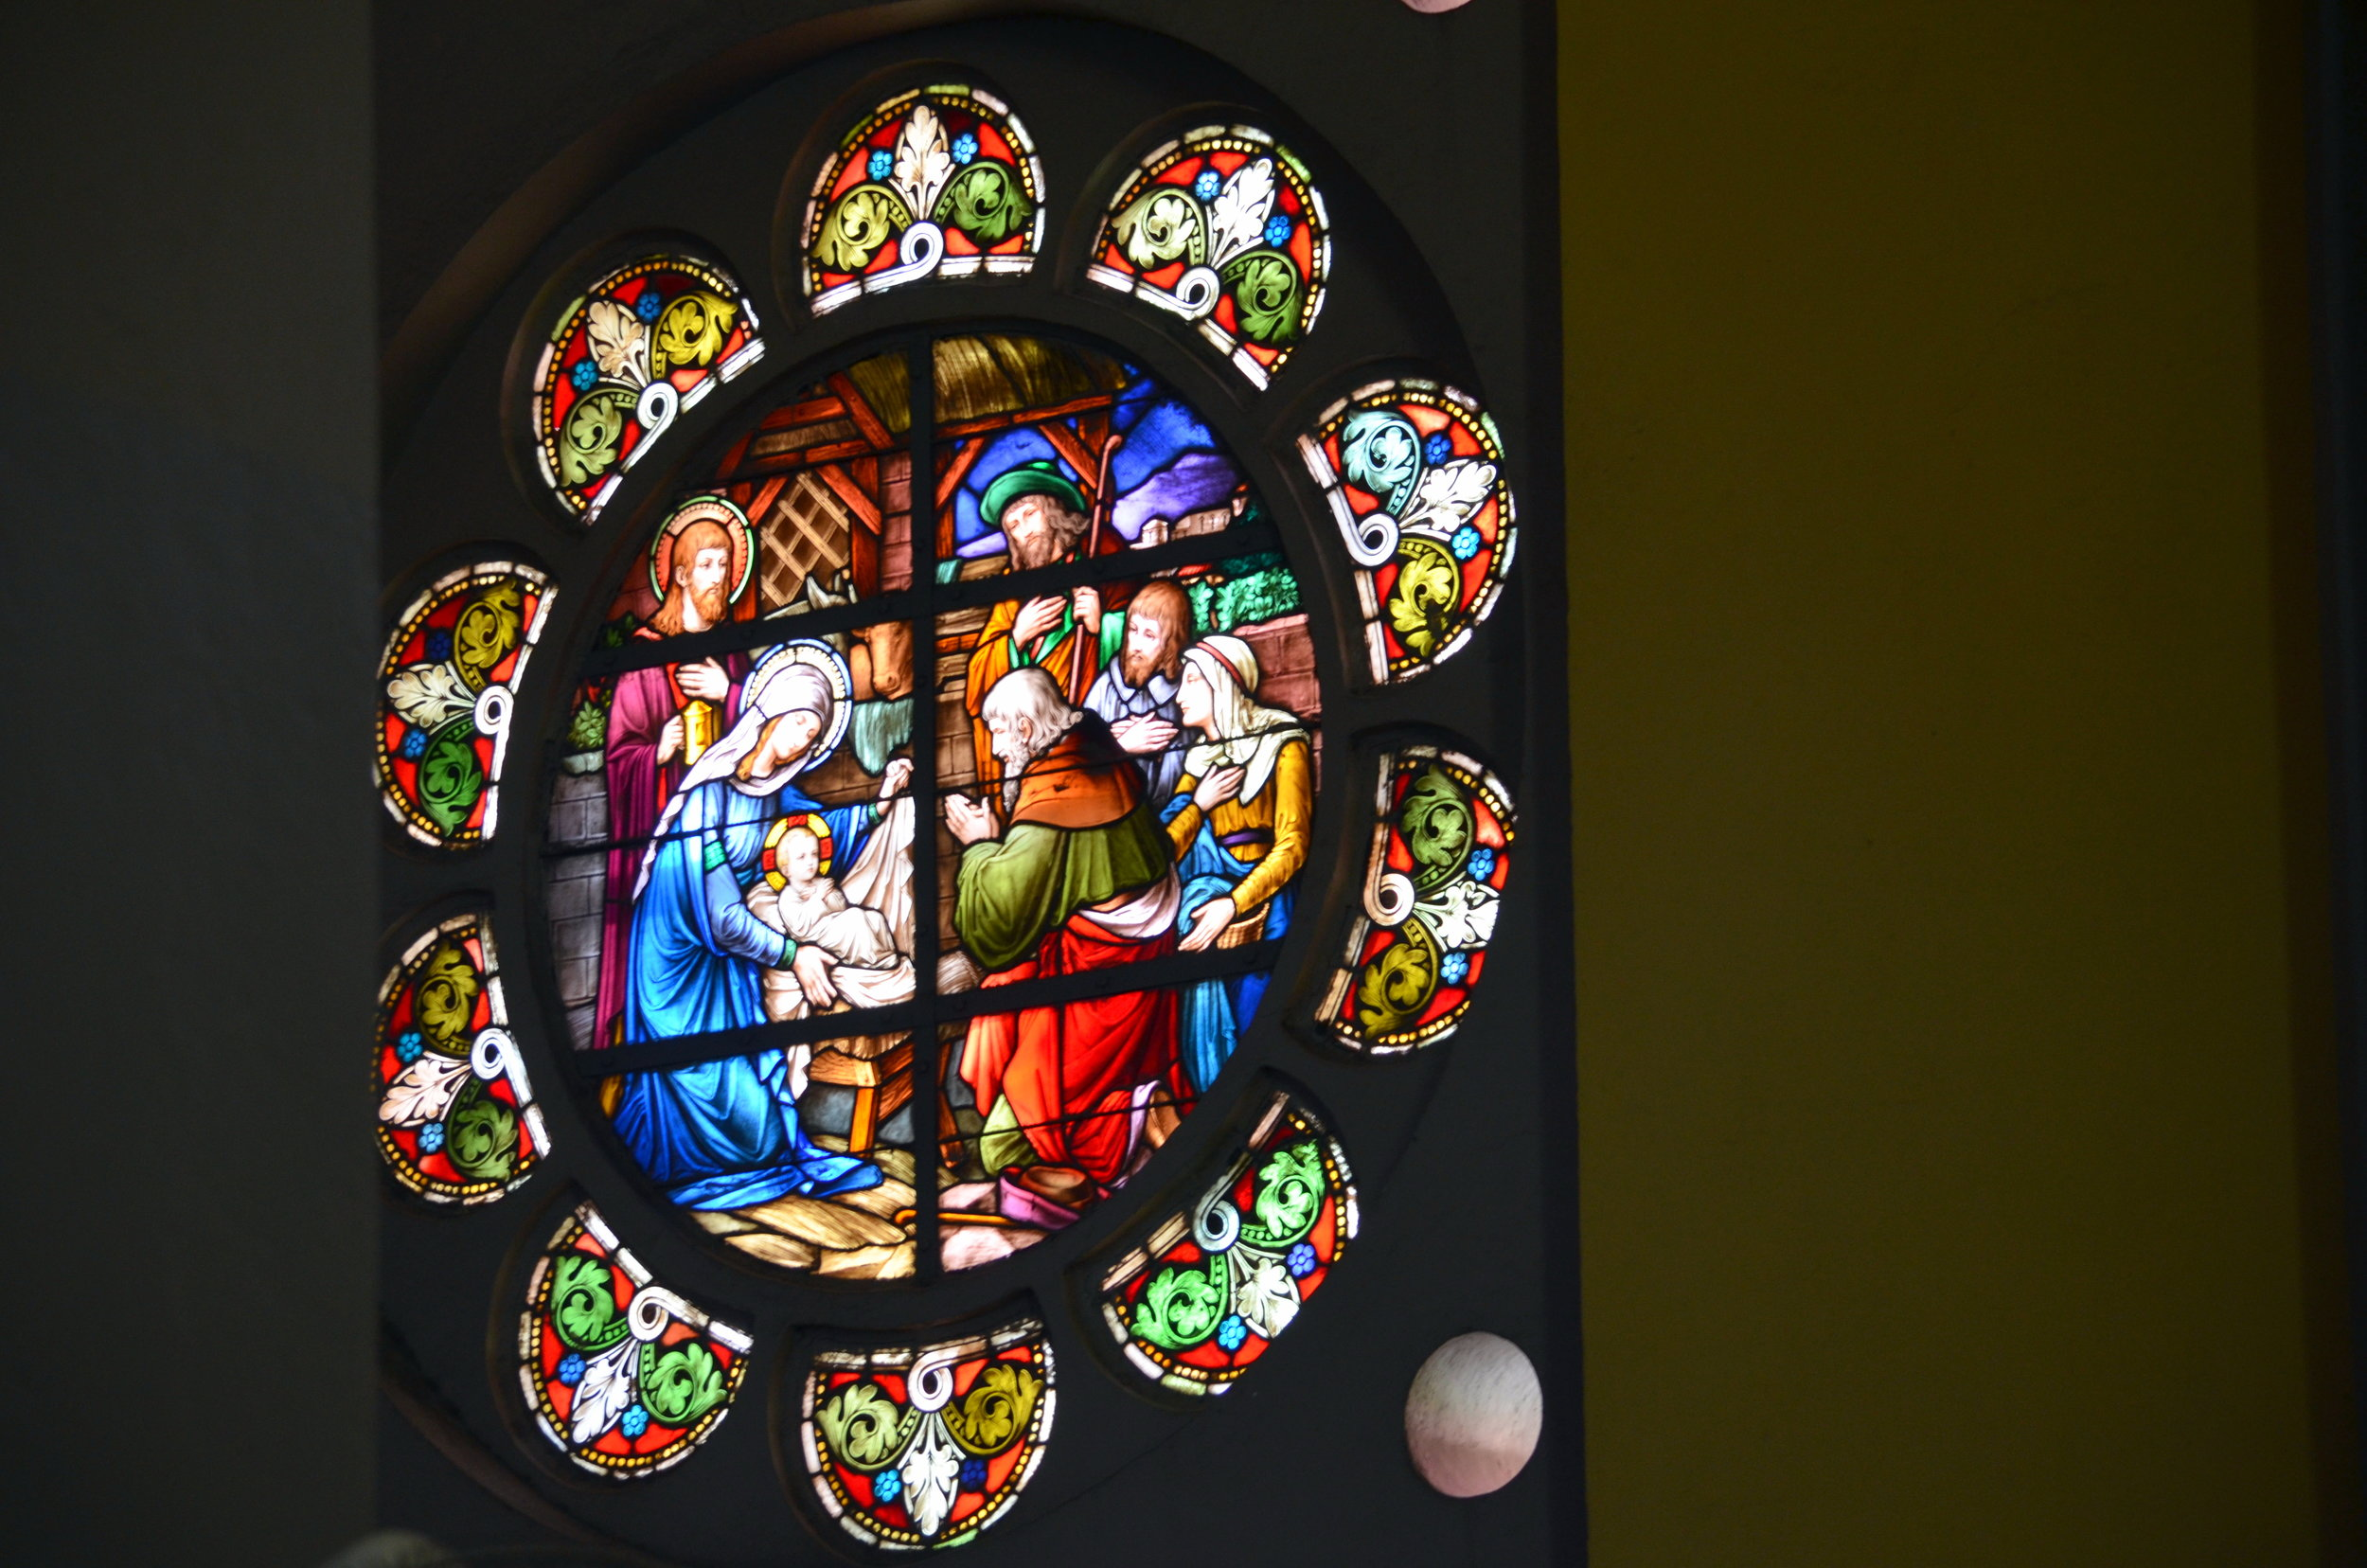 Copy of Stained glass in St. Joseph's (AF036)